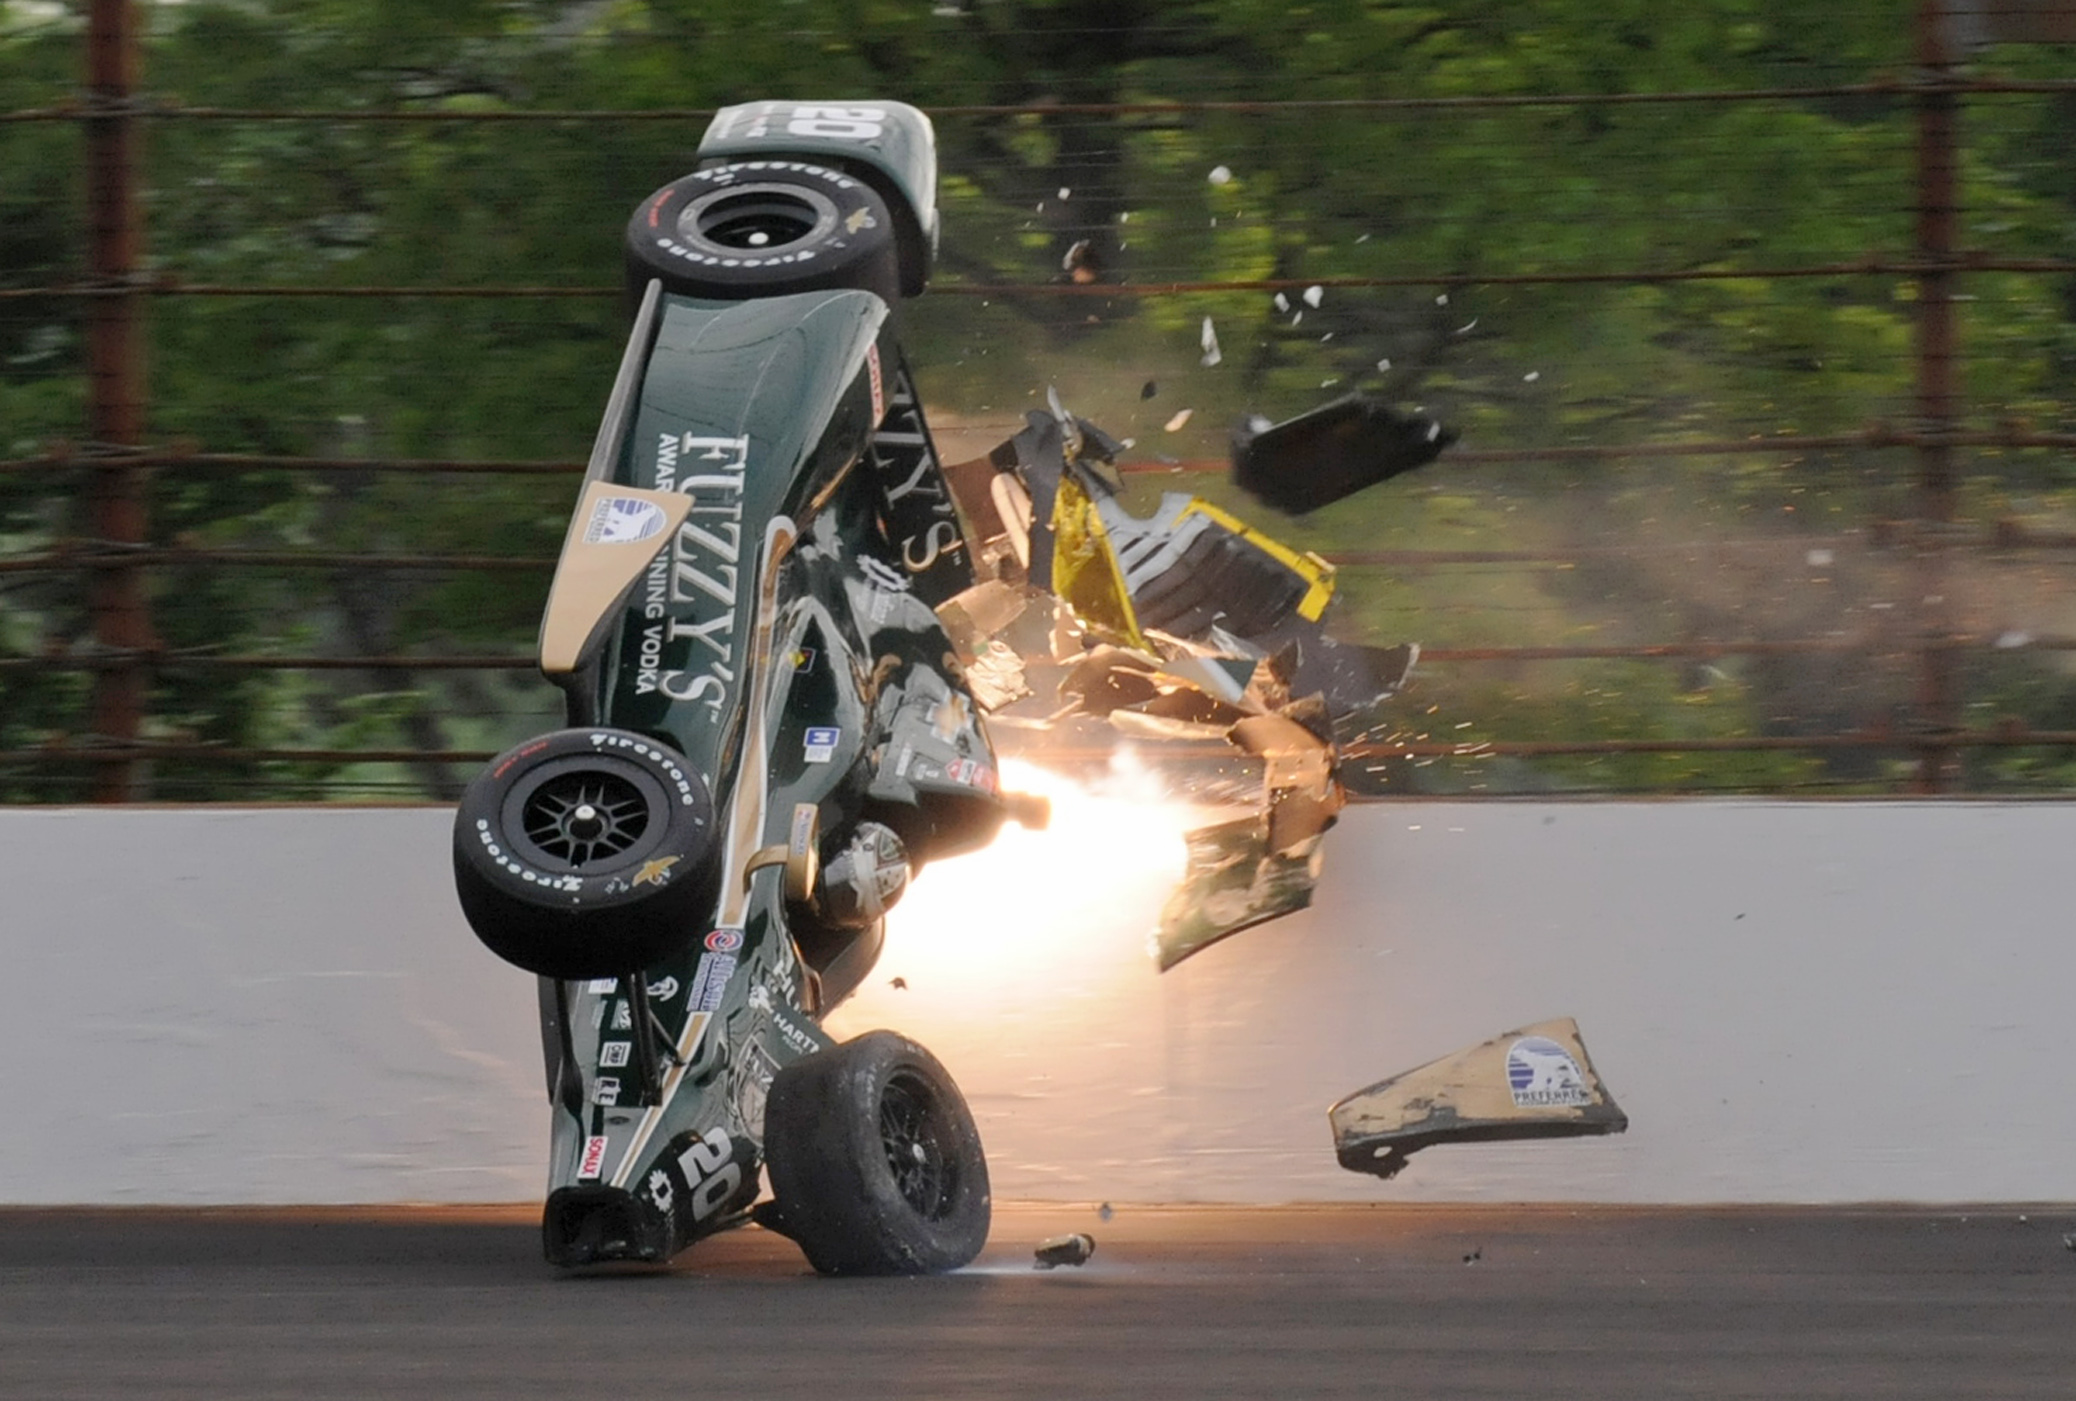 At Indianapolis 500, airborne cars add anxiety, mystery to ...